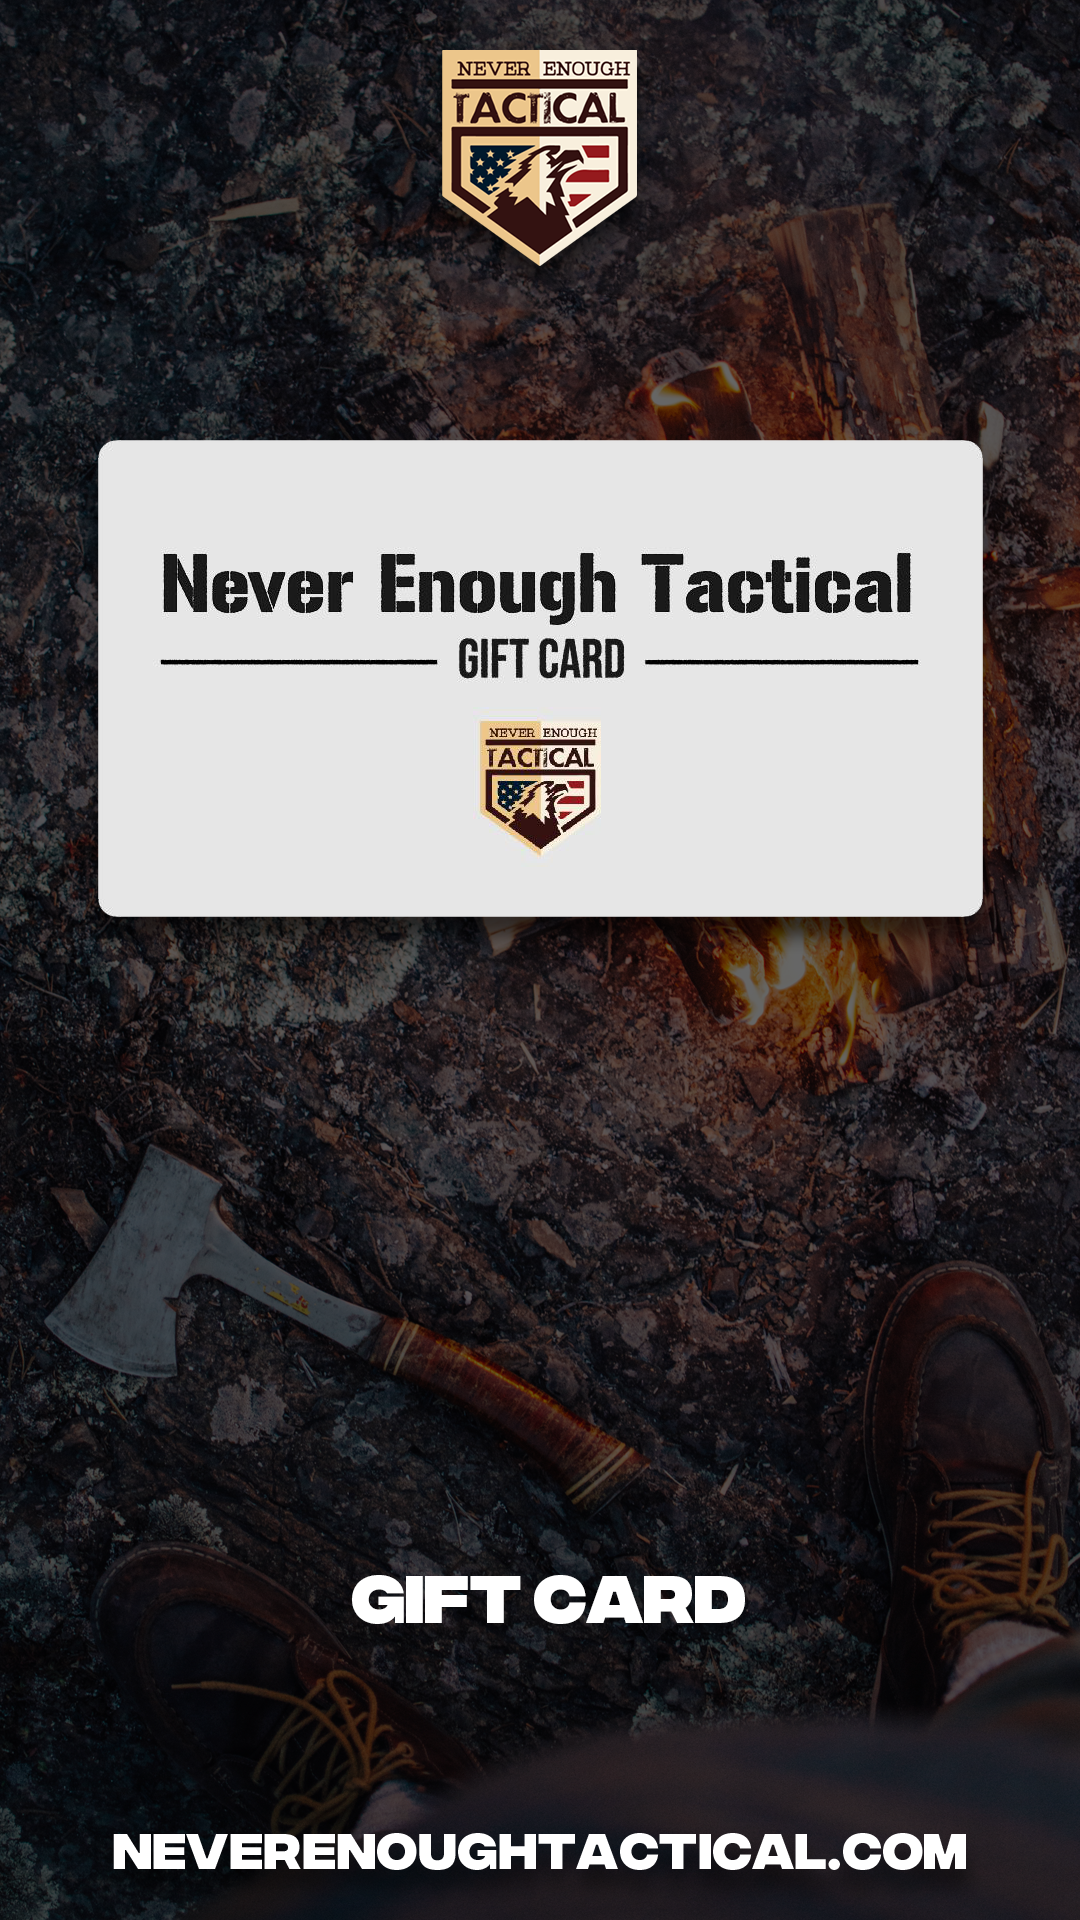 Mike Farina - Never Enough Tactical - Instagram Story -4.png